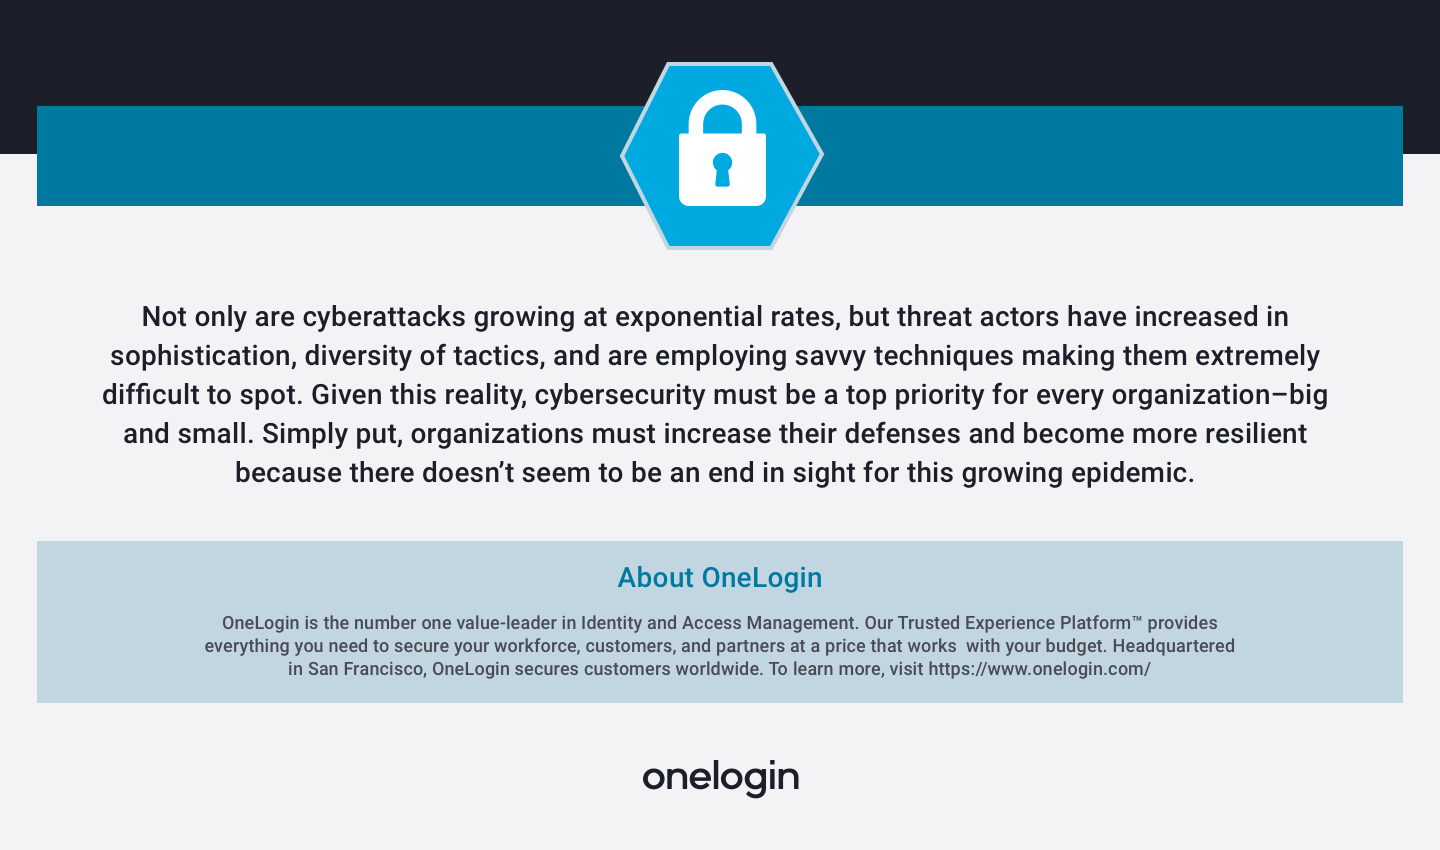 Threat actors are difficult to spot because they are increasingly sophisticated, use a variety of tactics, and employ savvy techniques. So organizations must increase their cybersecurity defences.